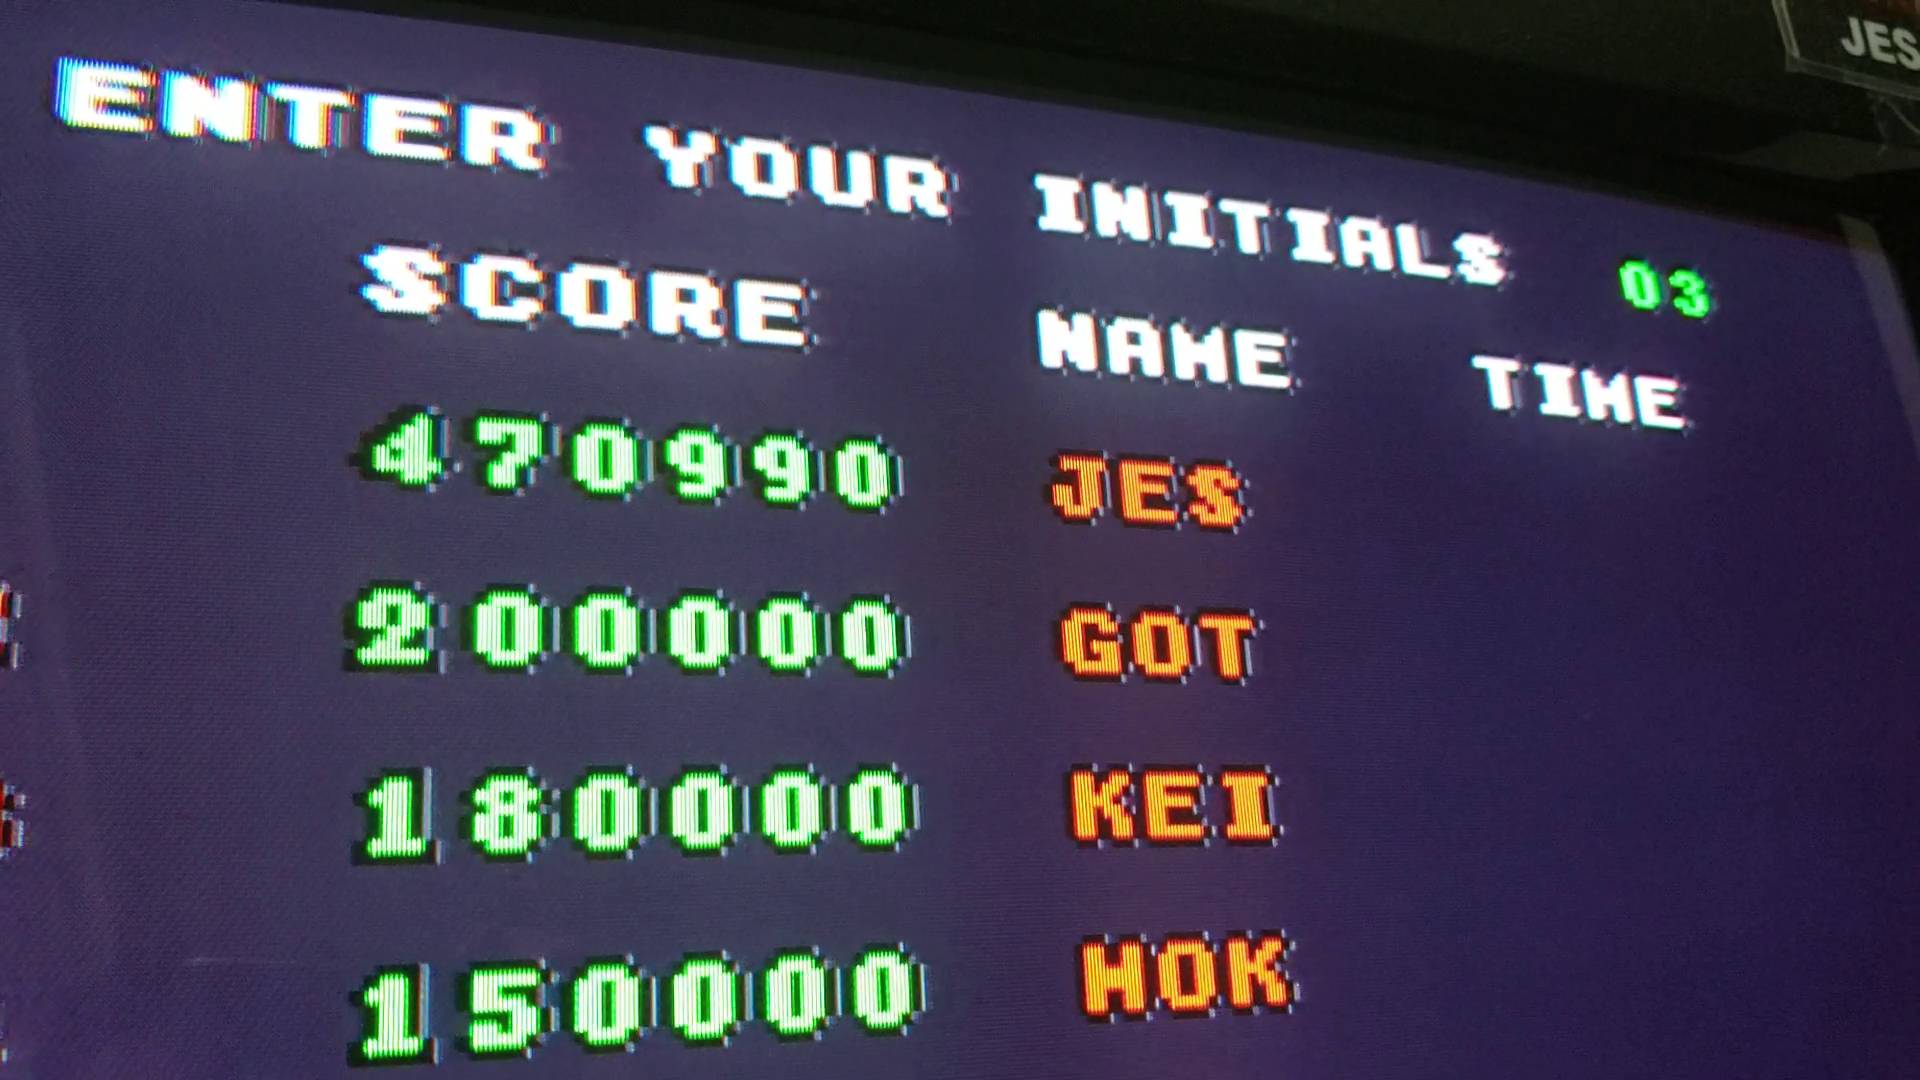 JES: Hang-On Jr. (Arcade Emulated / M.A.M.E.) 470,990 points on 2019-08-12 23:05:11